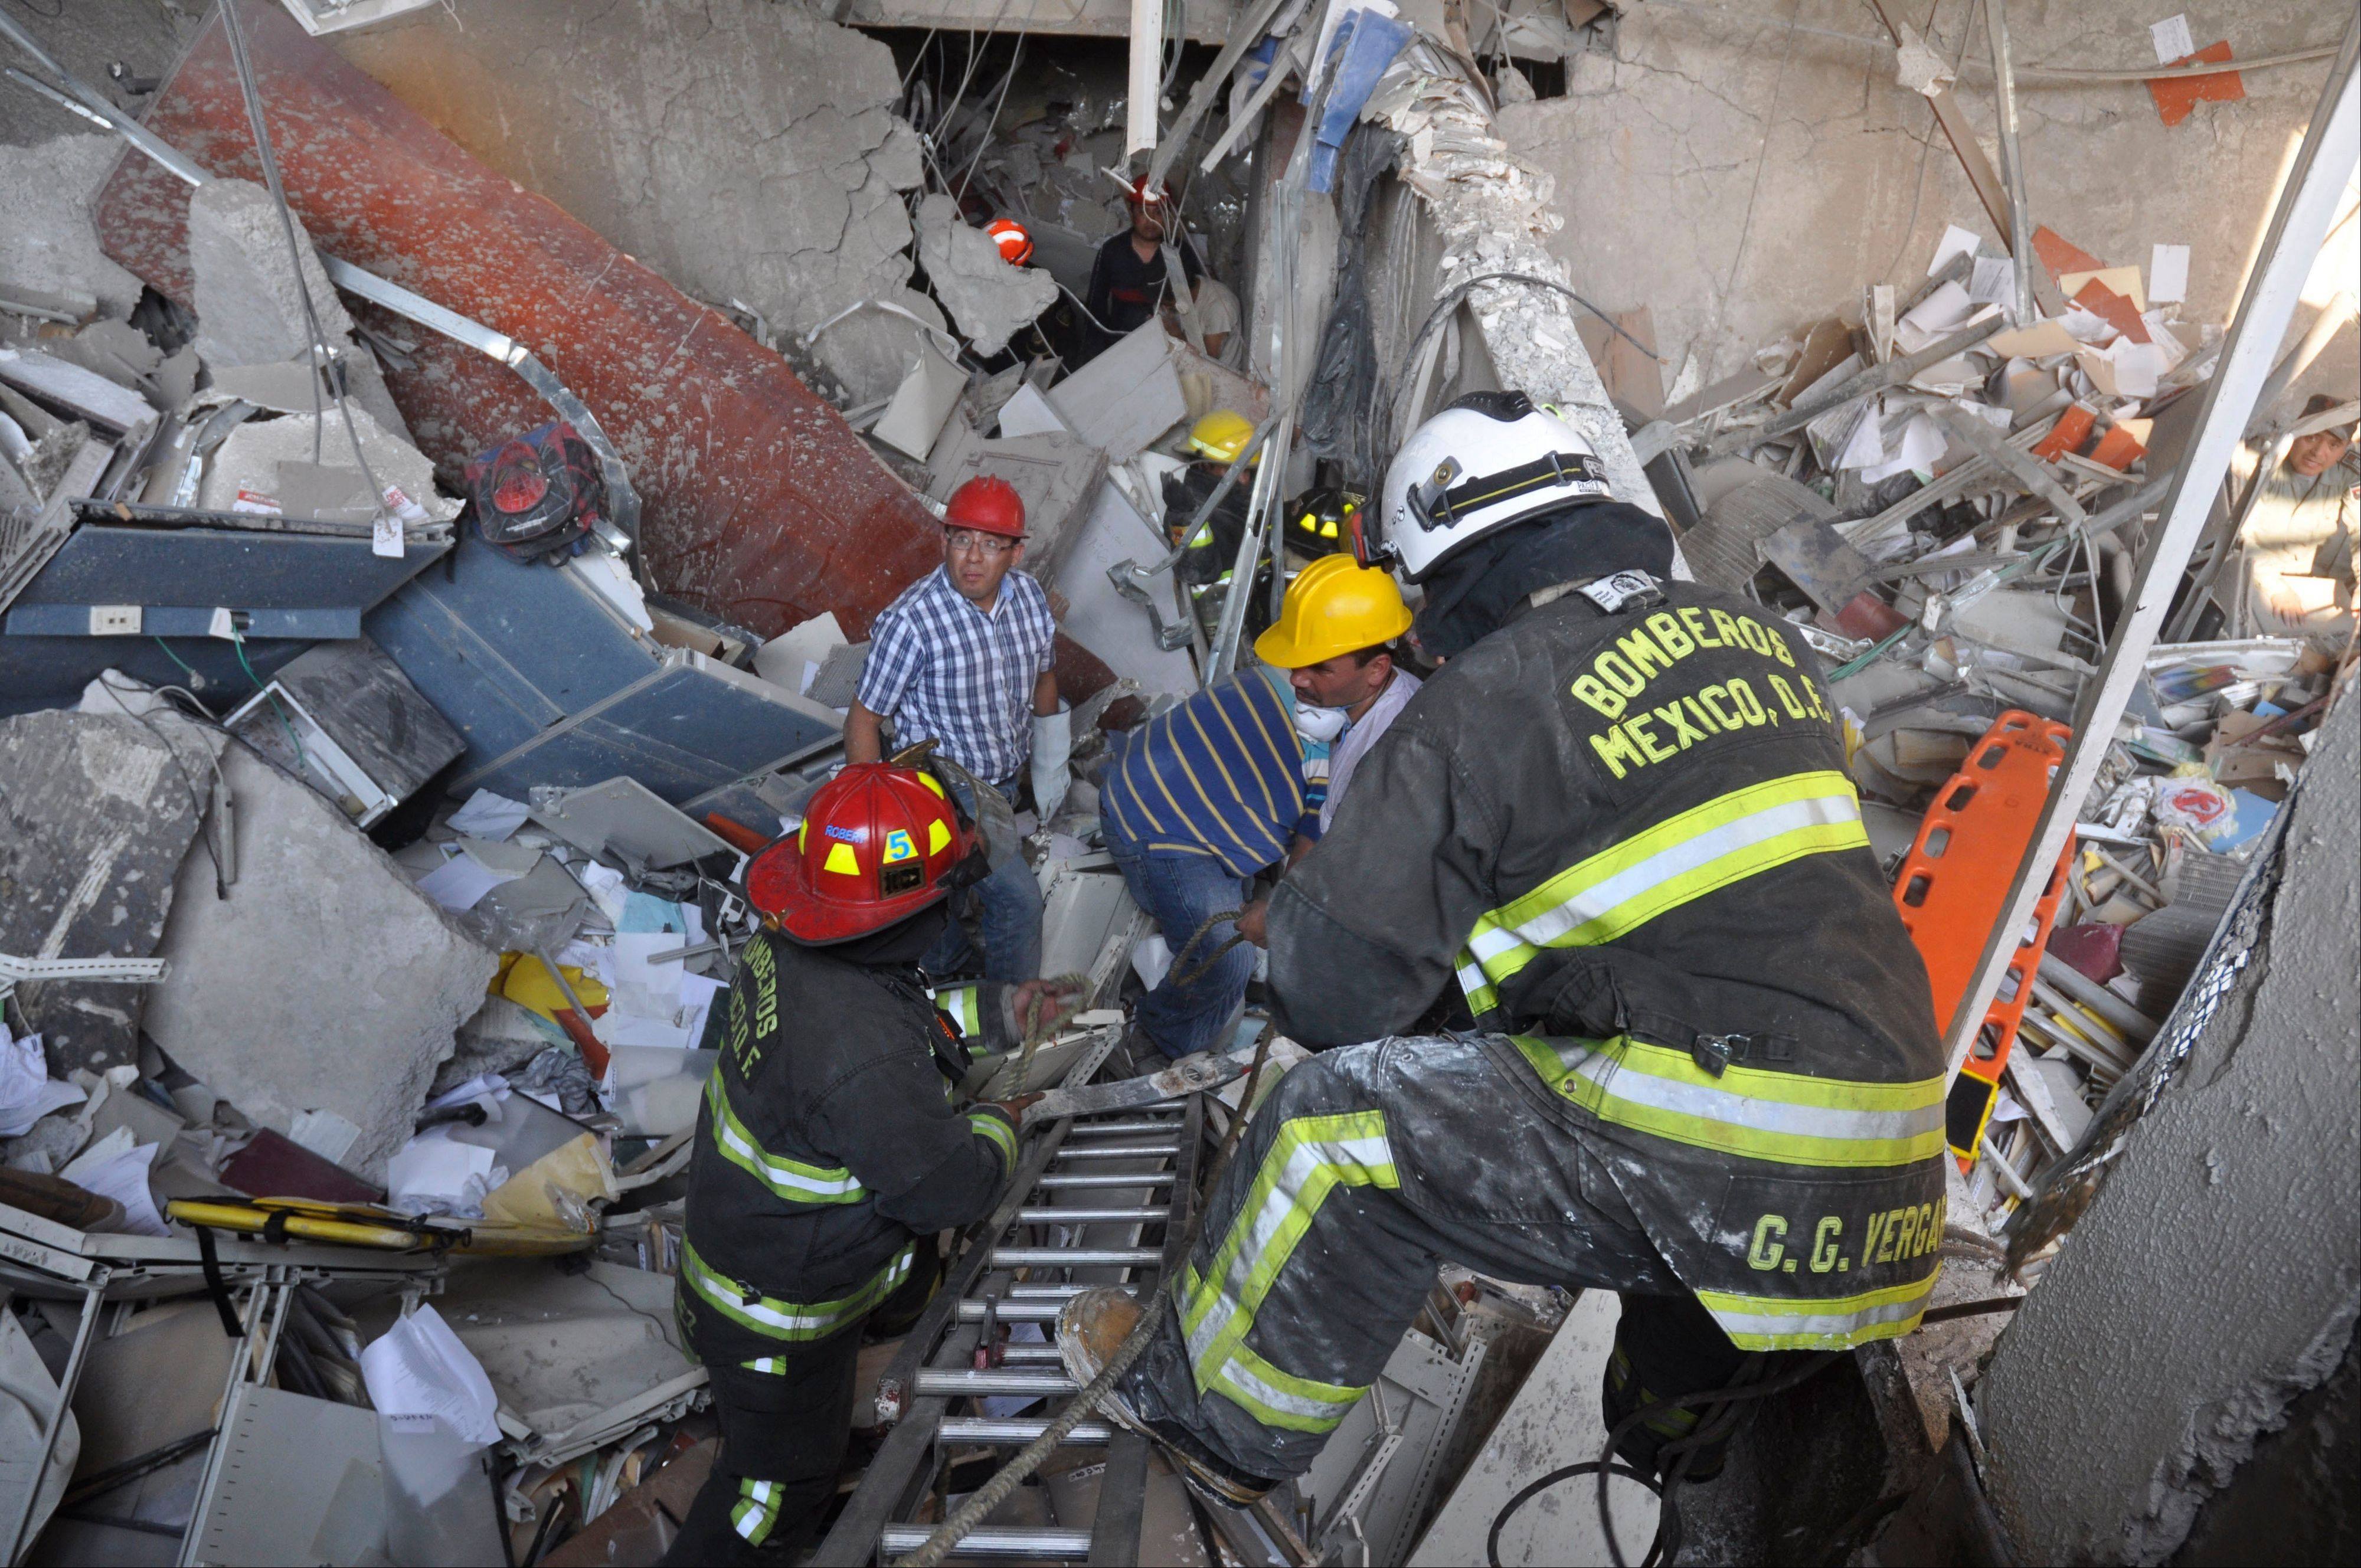 Firefighters and workers dig for survivors after an explosion at an adjacent building to the executive tower of Mexico's state-owned oil company PEMEX in Mexico City on Thursday.